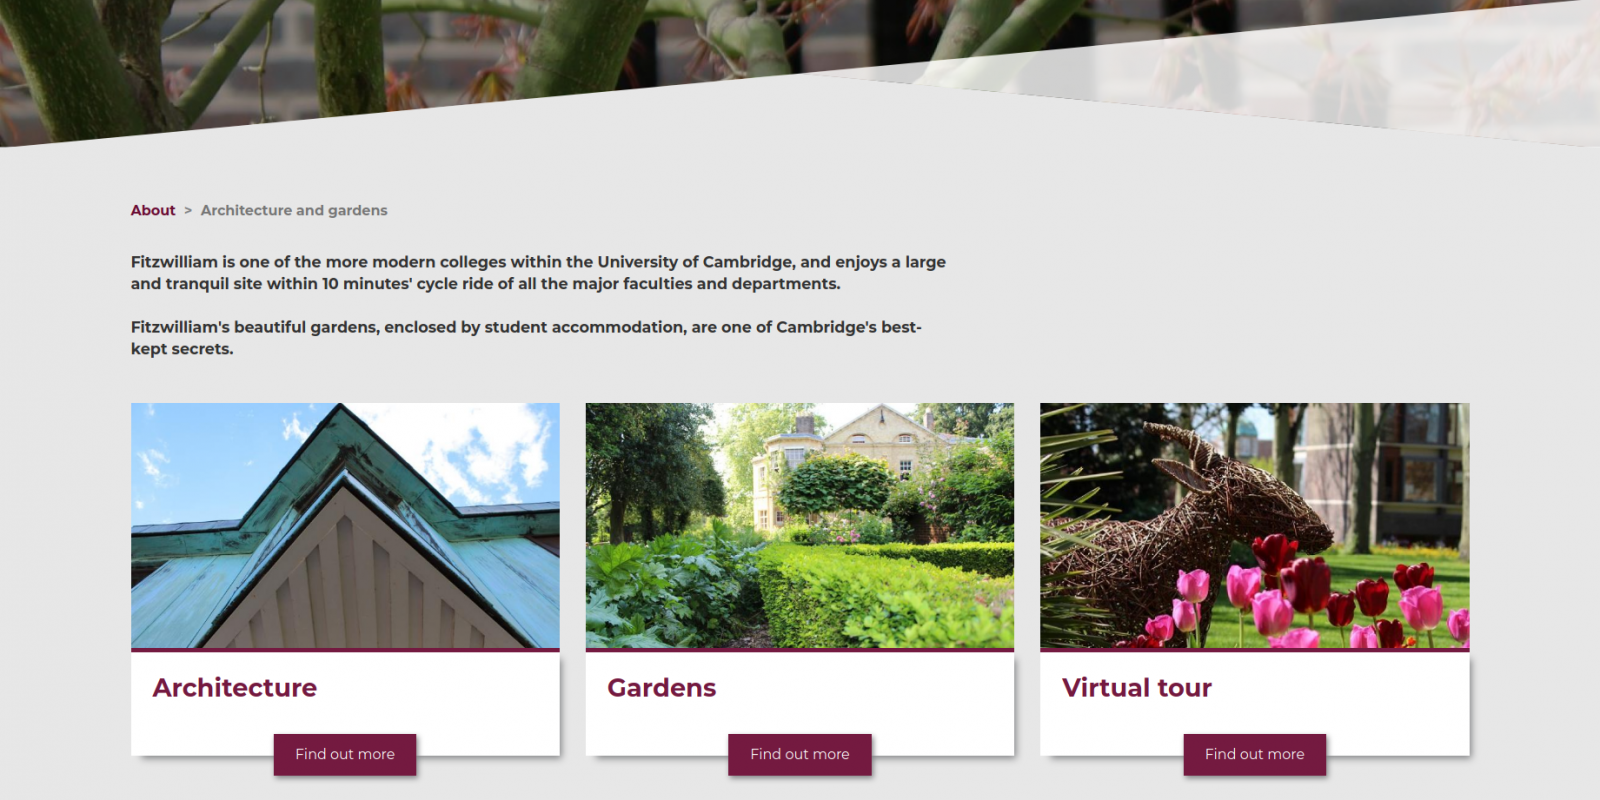 Fitzwilliam College, University of Cambrdge - website page on architecture and gardens